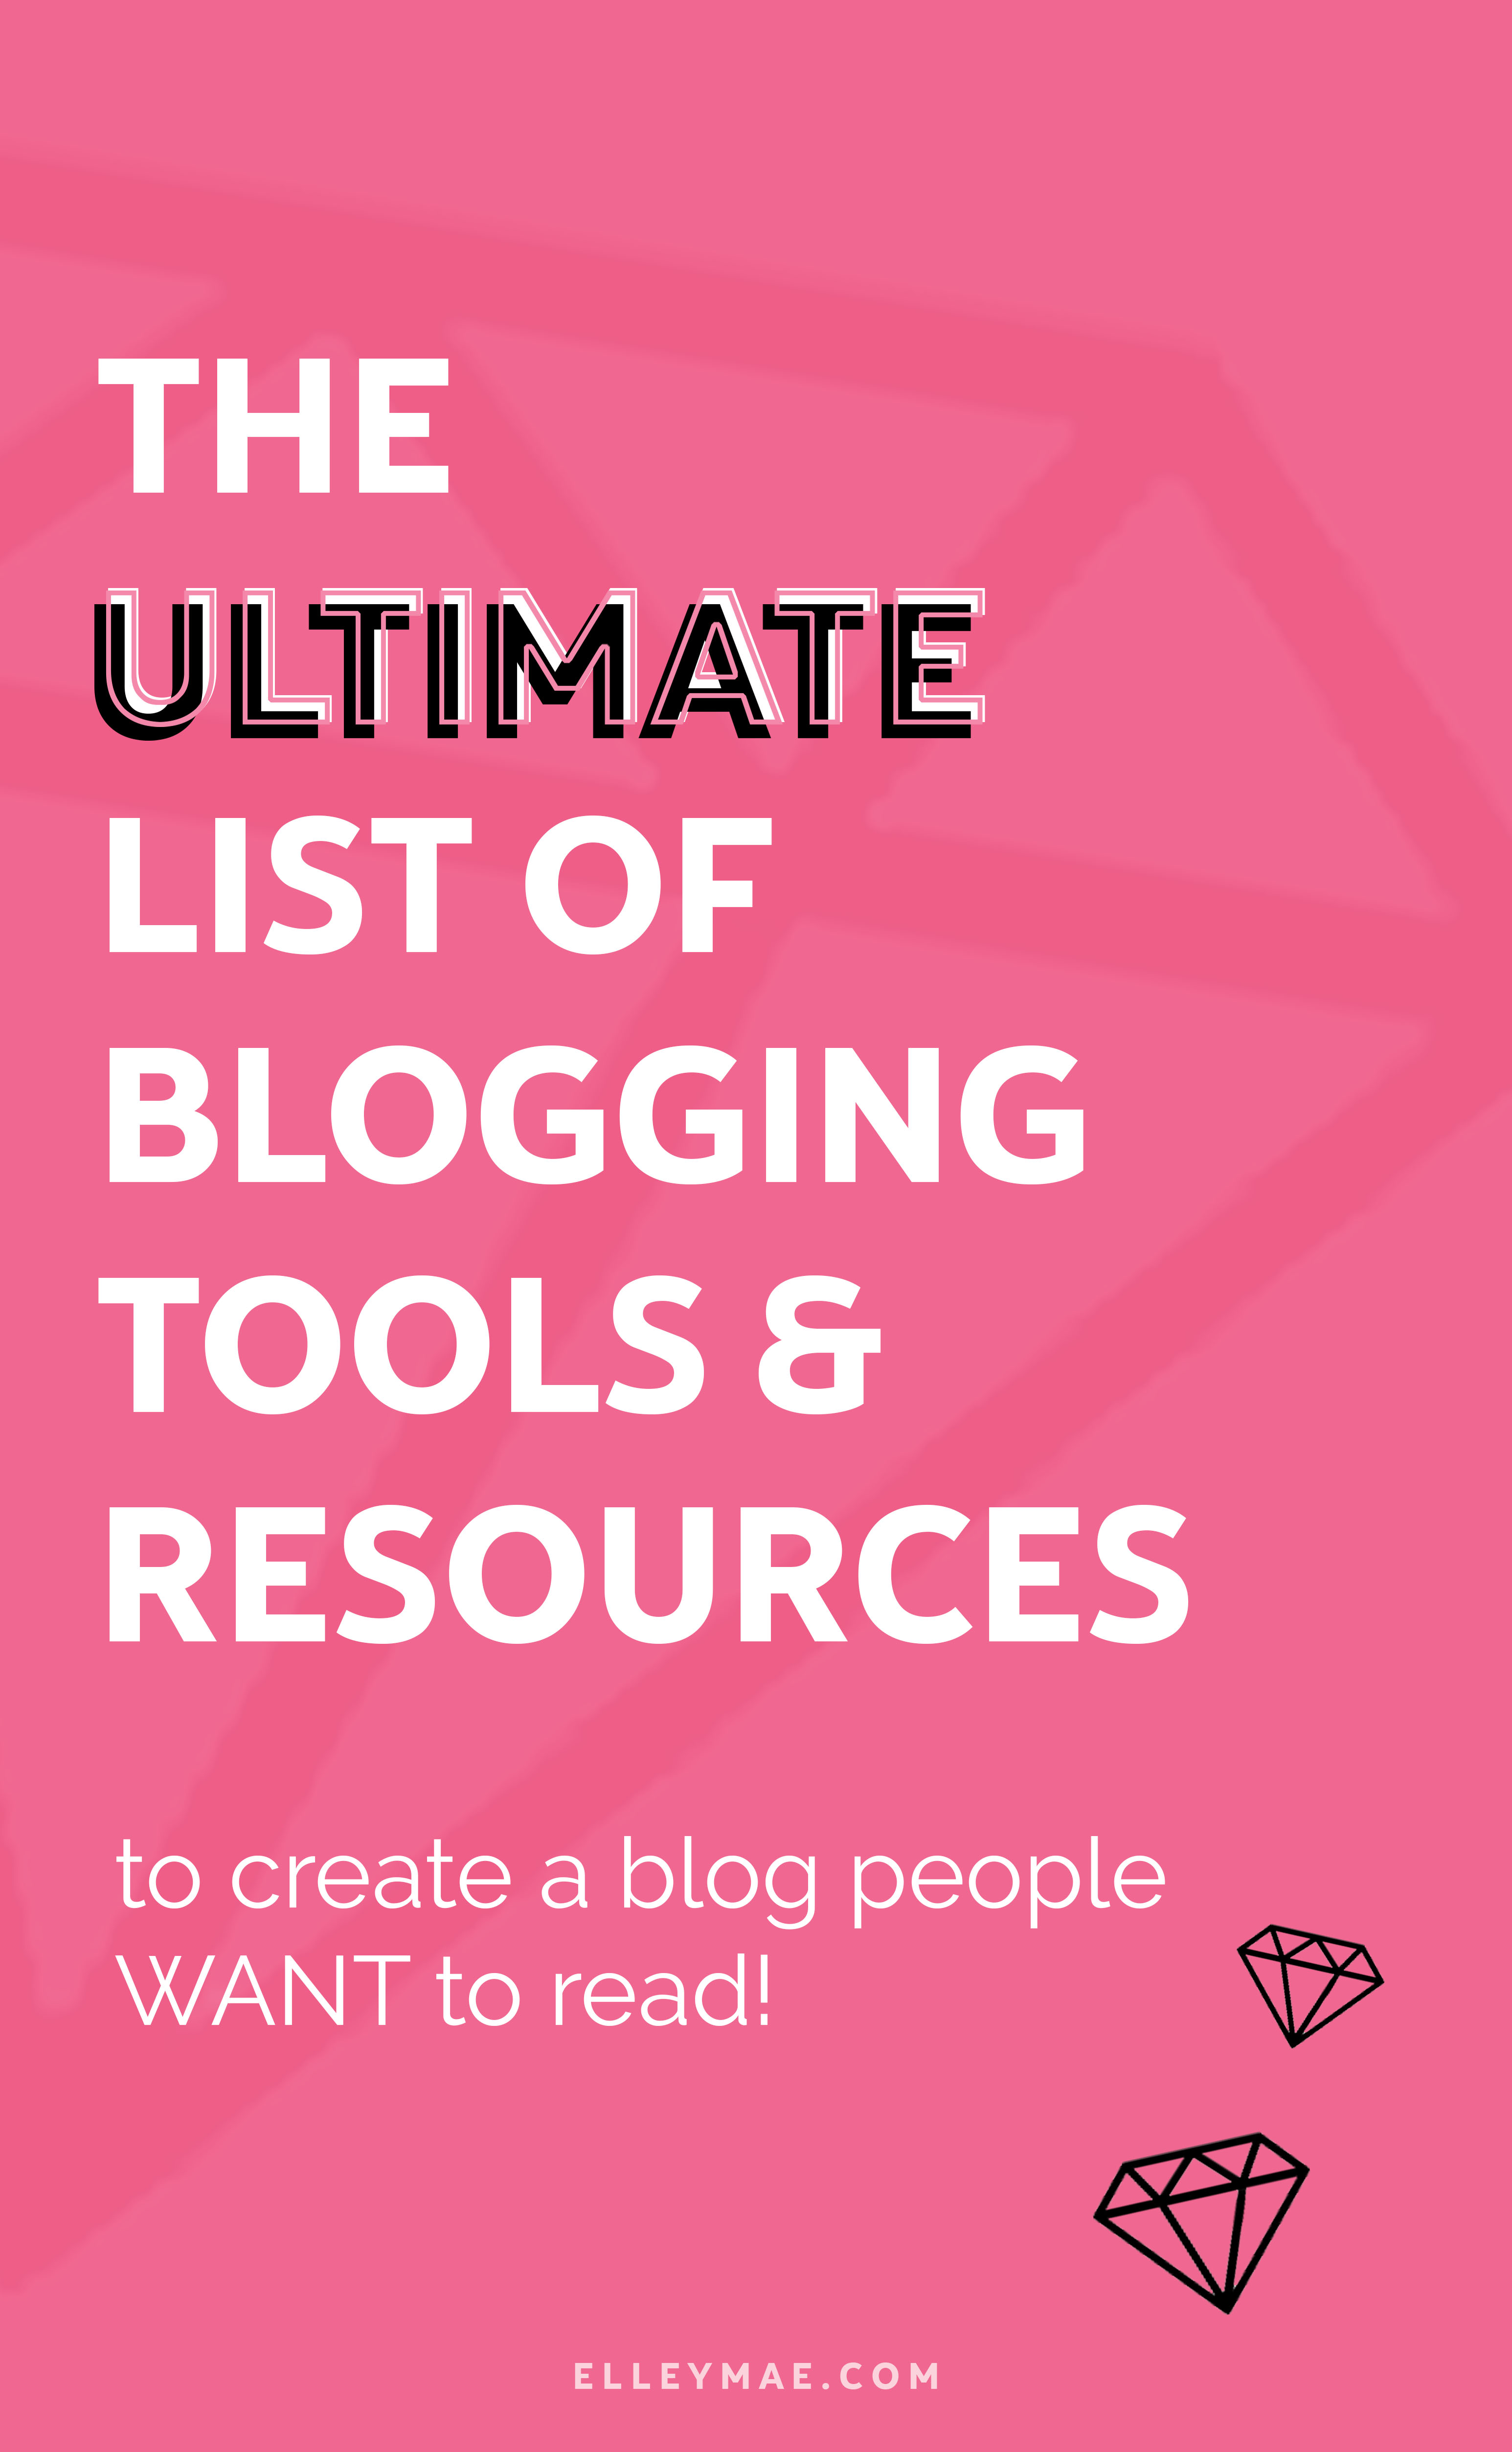 25 Essential Blogging Tools In Every Pro Bloggers Toolkit | So you want to start a blog but you're unsure what blogging tools you're actually going to need hey? Well, get instant access to the ultimate list I've put together so you don't have to waste time Googling aimelessly (like I did). Use Tailwind to put your Pinterest on autopilot, grow your following with BoardBooster, write amazing blog posts with Grammarly & so much more. This is THE ULTIMATE list for pro bloggers reading to skyrocket their growth on their blogs & social platforms. Download free blog resources instantly | ElleyMae.com